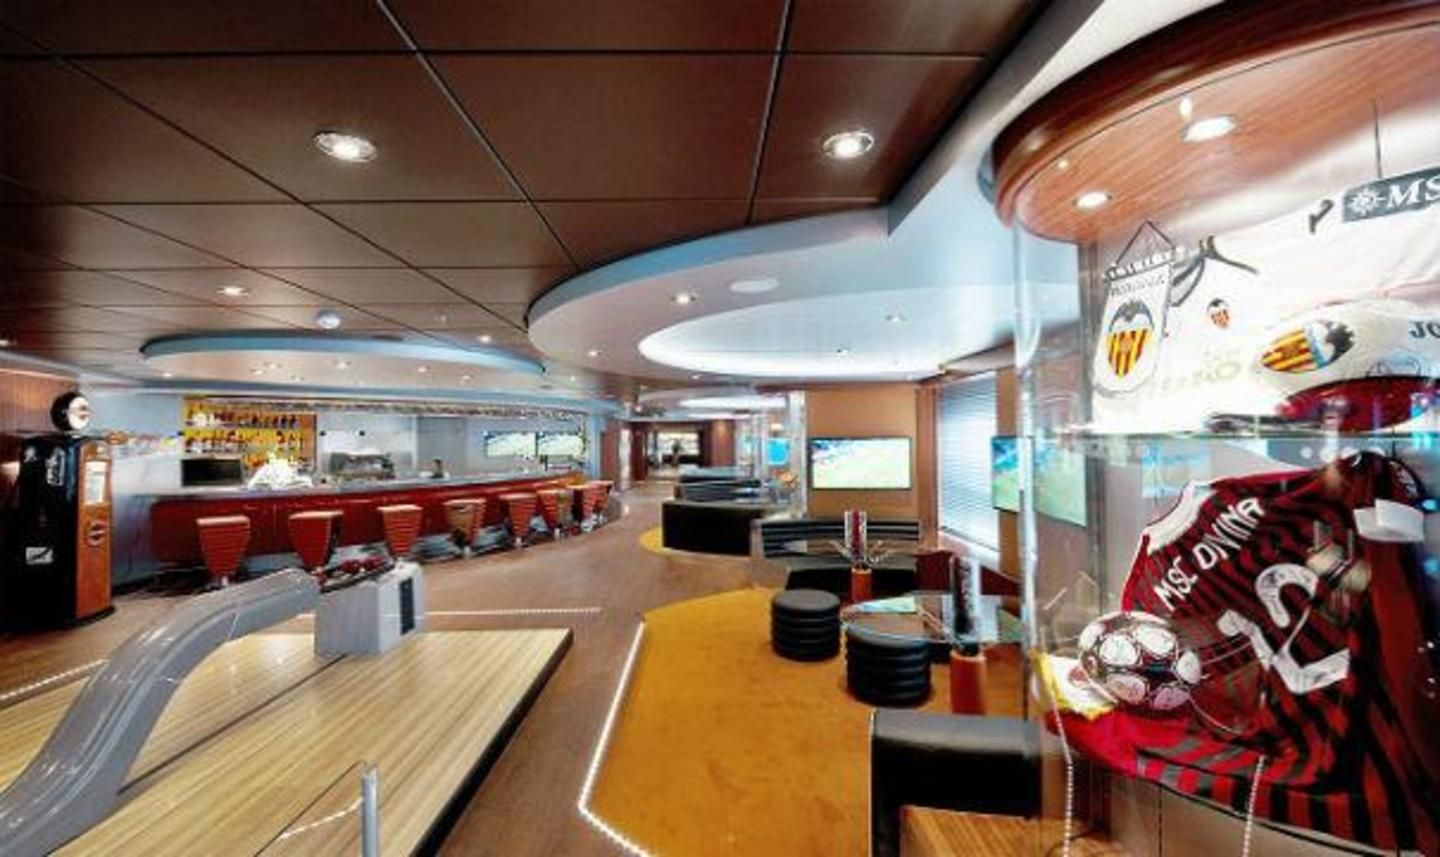 MSC Divina Sports Bar & Bowling